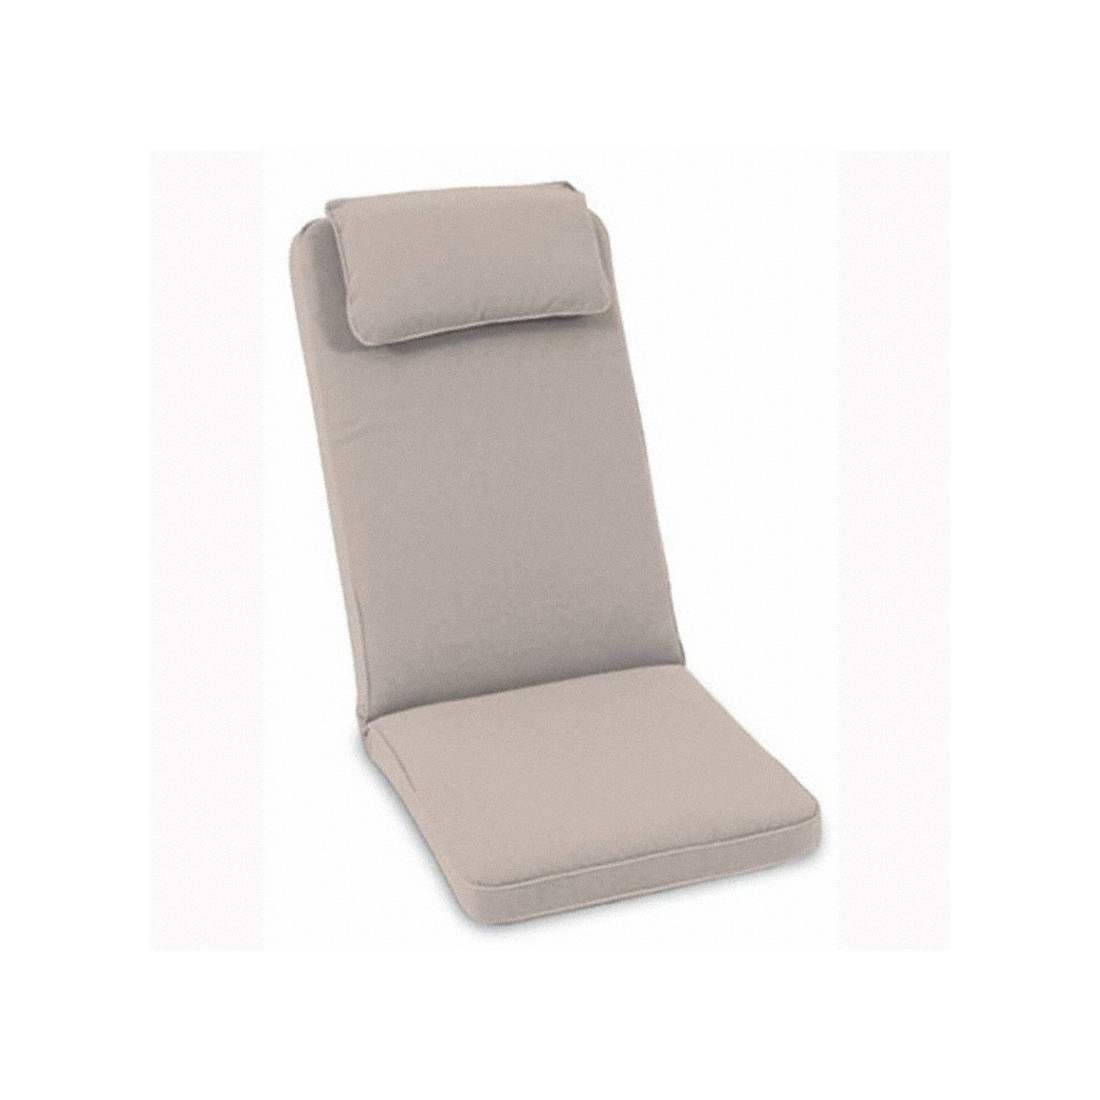 Coussin De Chaise De Jardin D Houssable Table De Lit